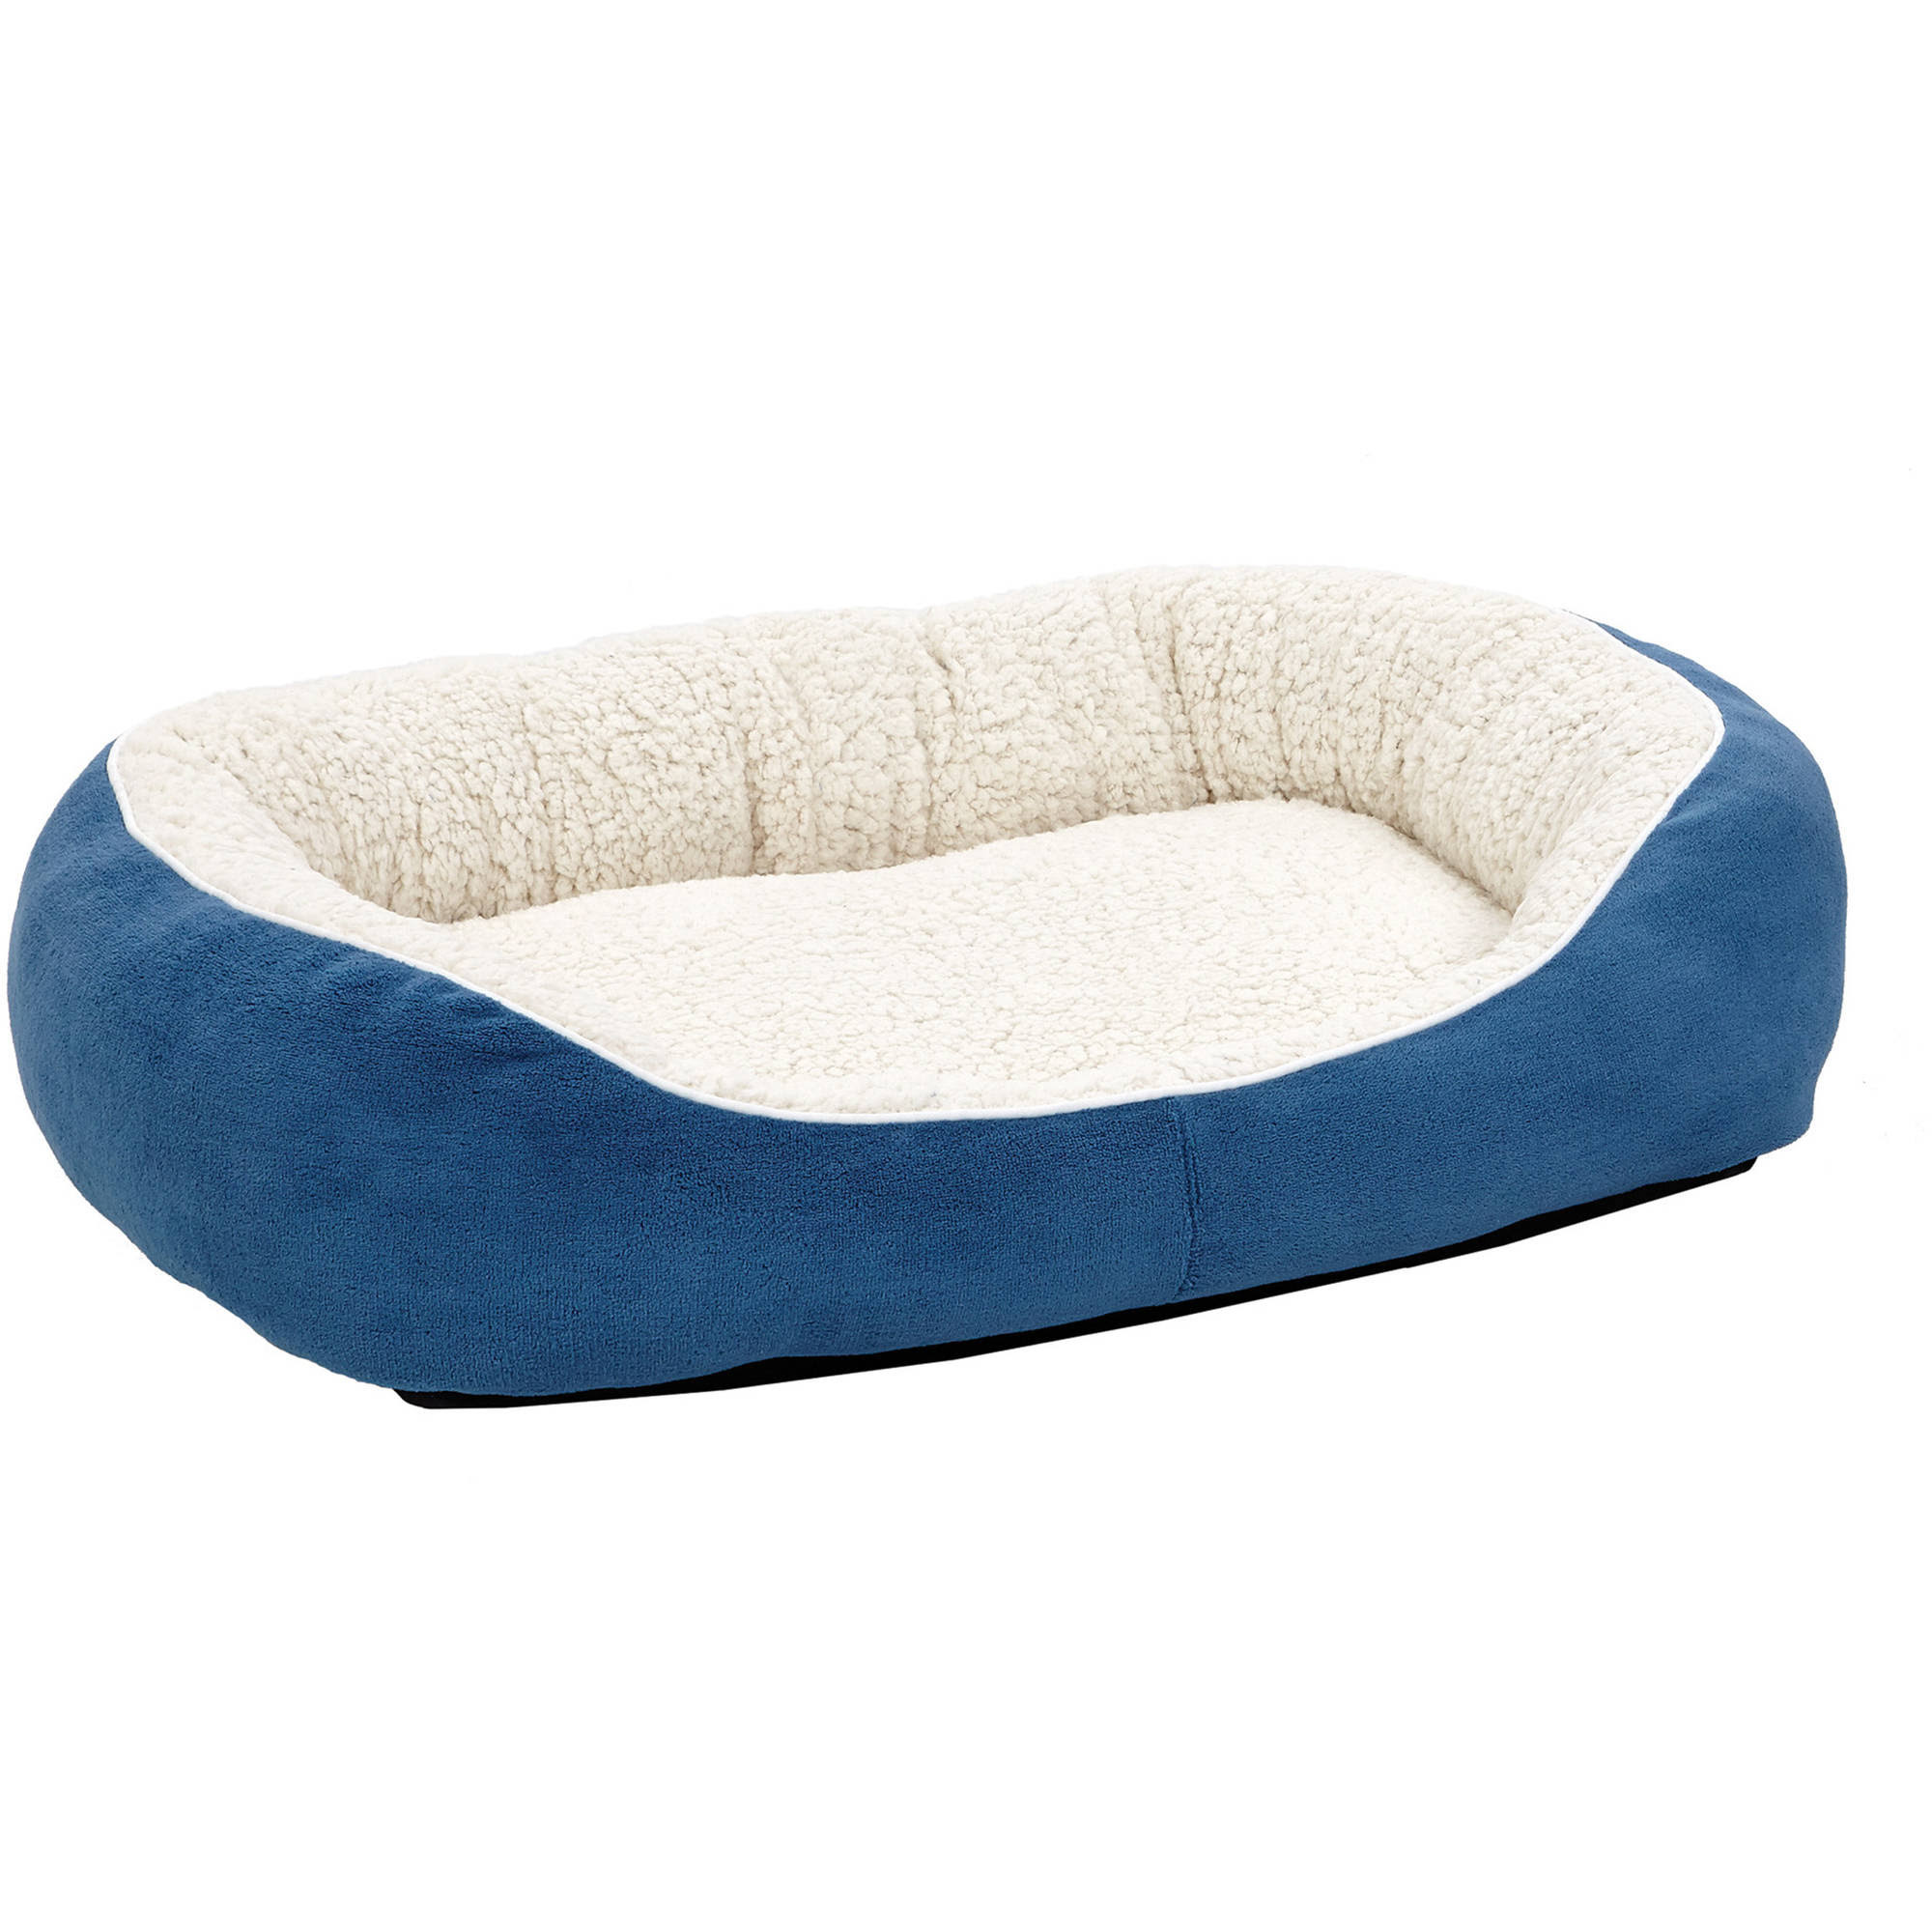 Midwest Homes for Pets Cuddle Bed - Blue, Medium